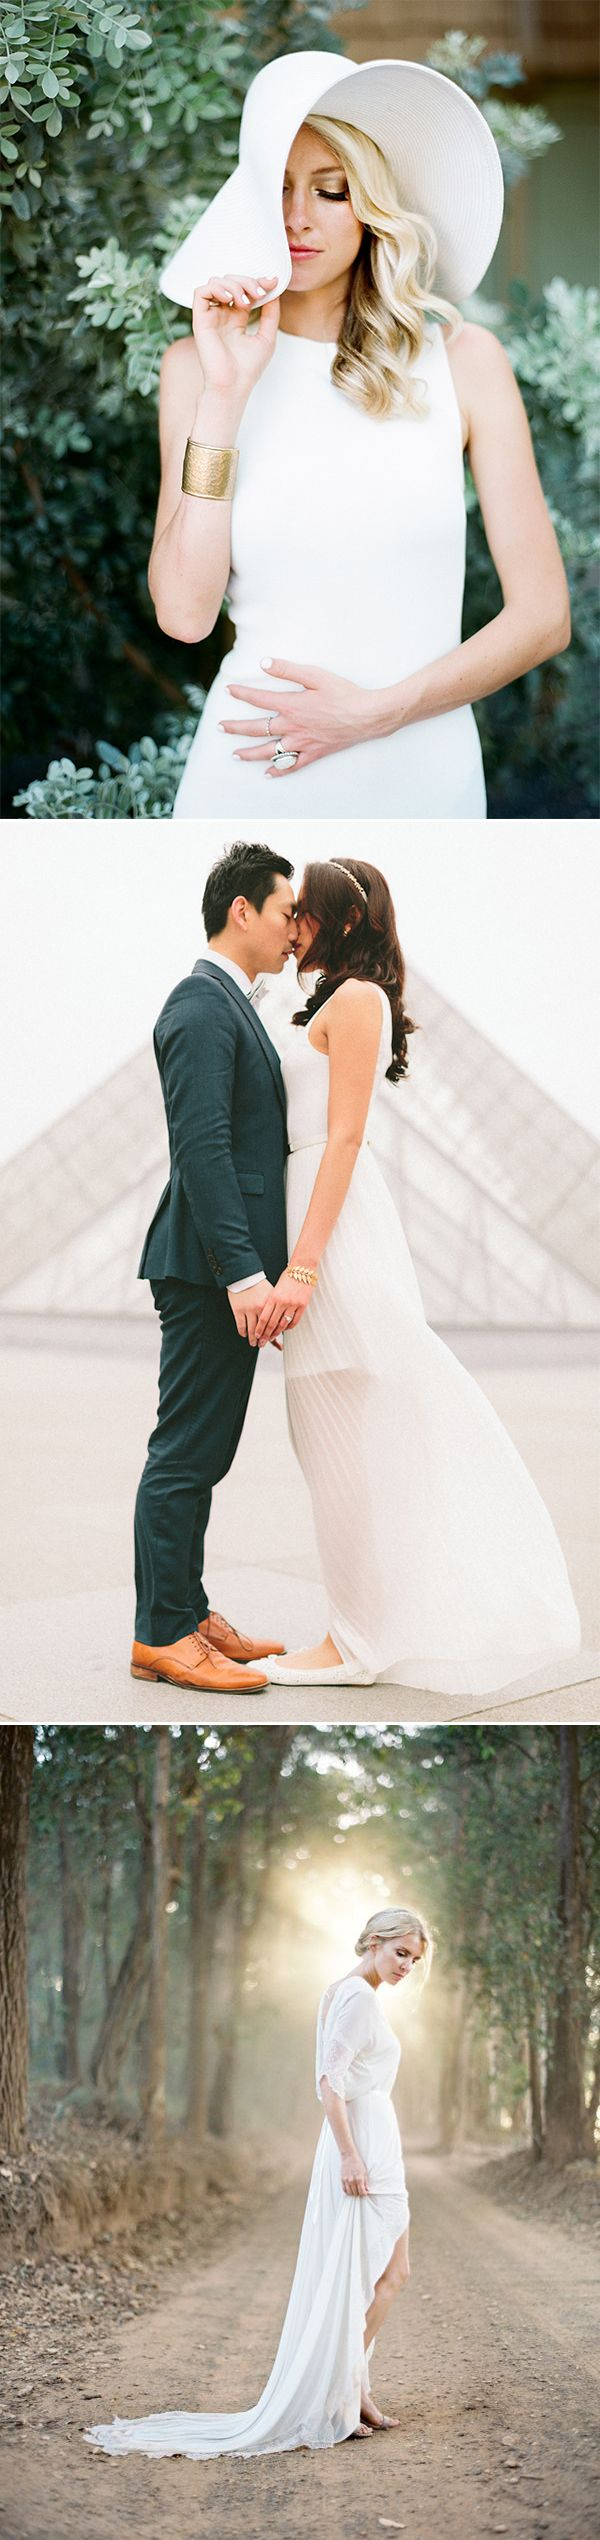 cool wedding shot ideas%0A What to Wear for Your Engagement Shoot    Stylish Outfit Ideas for  Engagement Photos You u